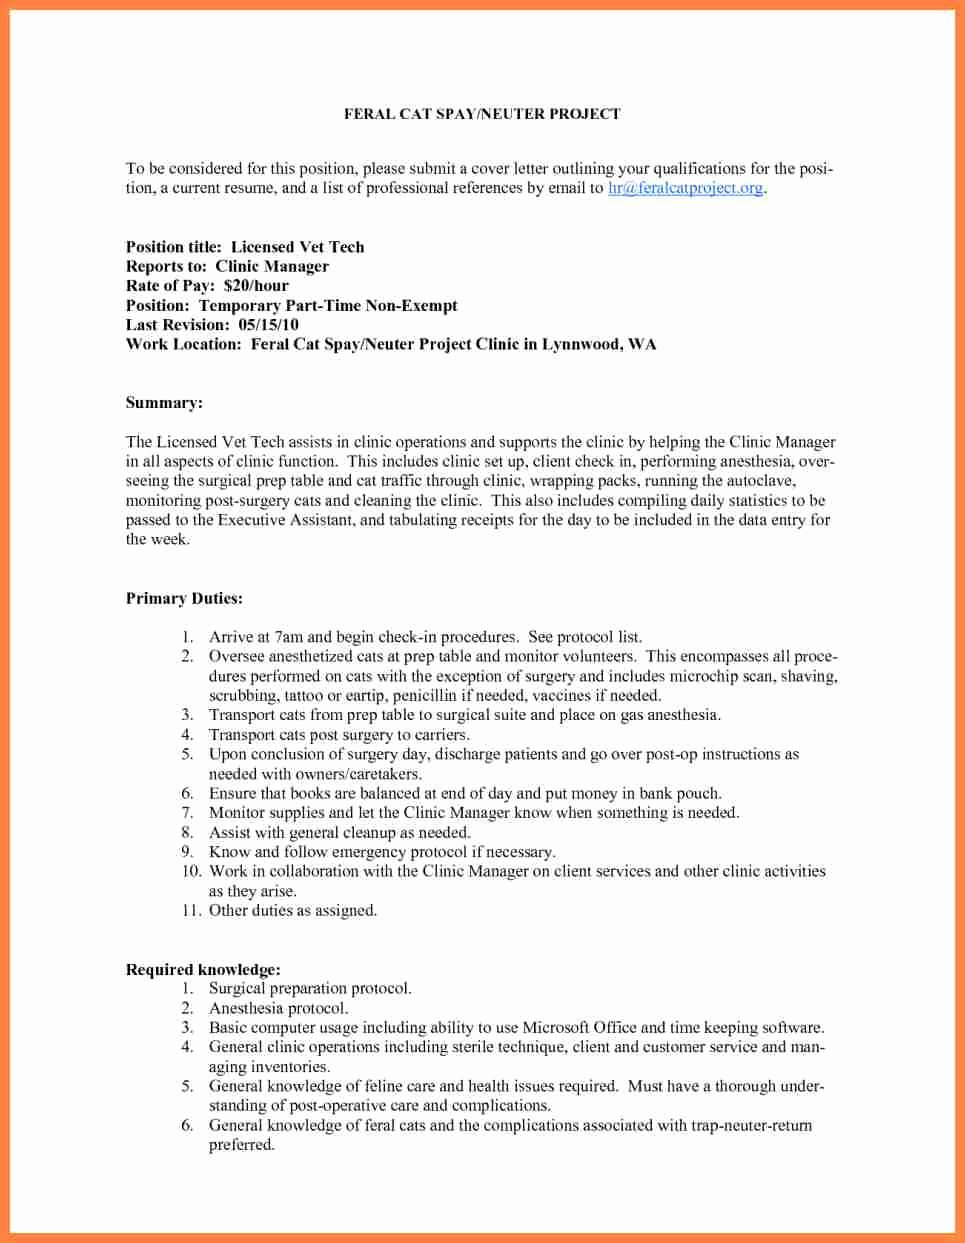 Sample Of Salary Requirements Letter Awesome Cover Letter where to Put Salary Requirements when and